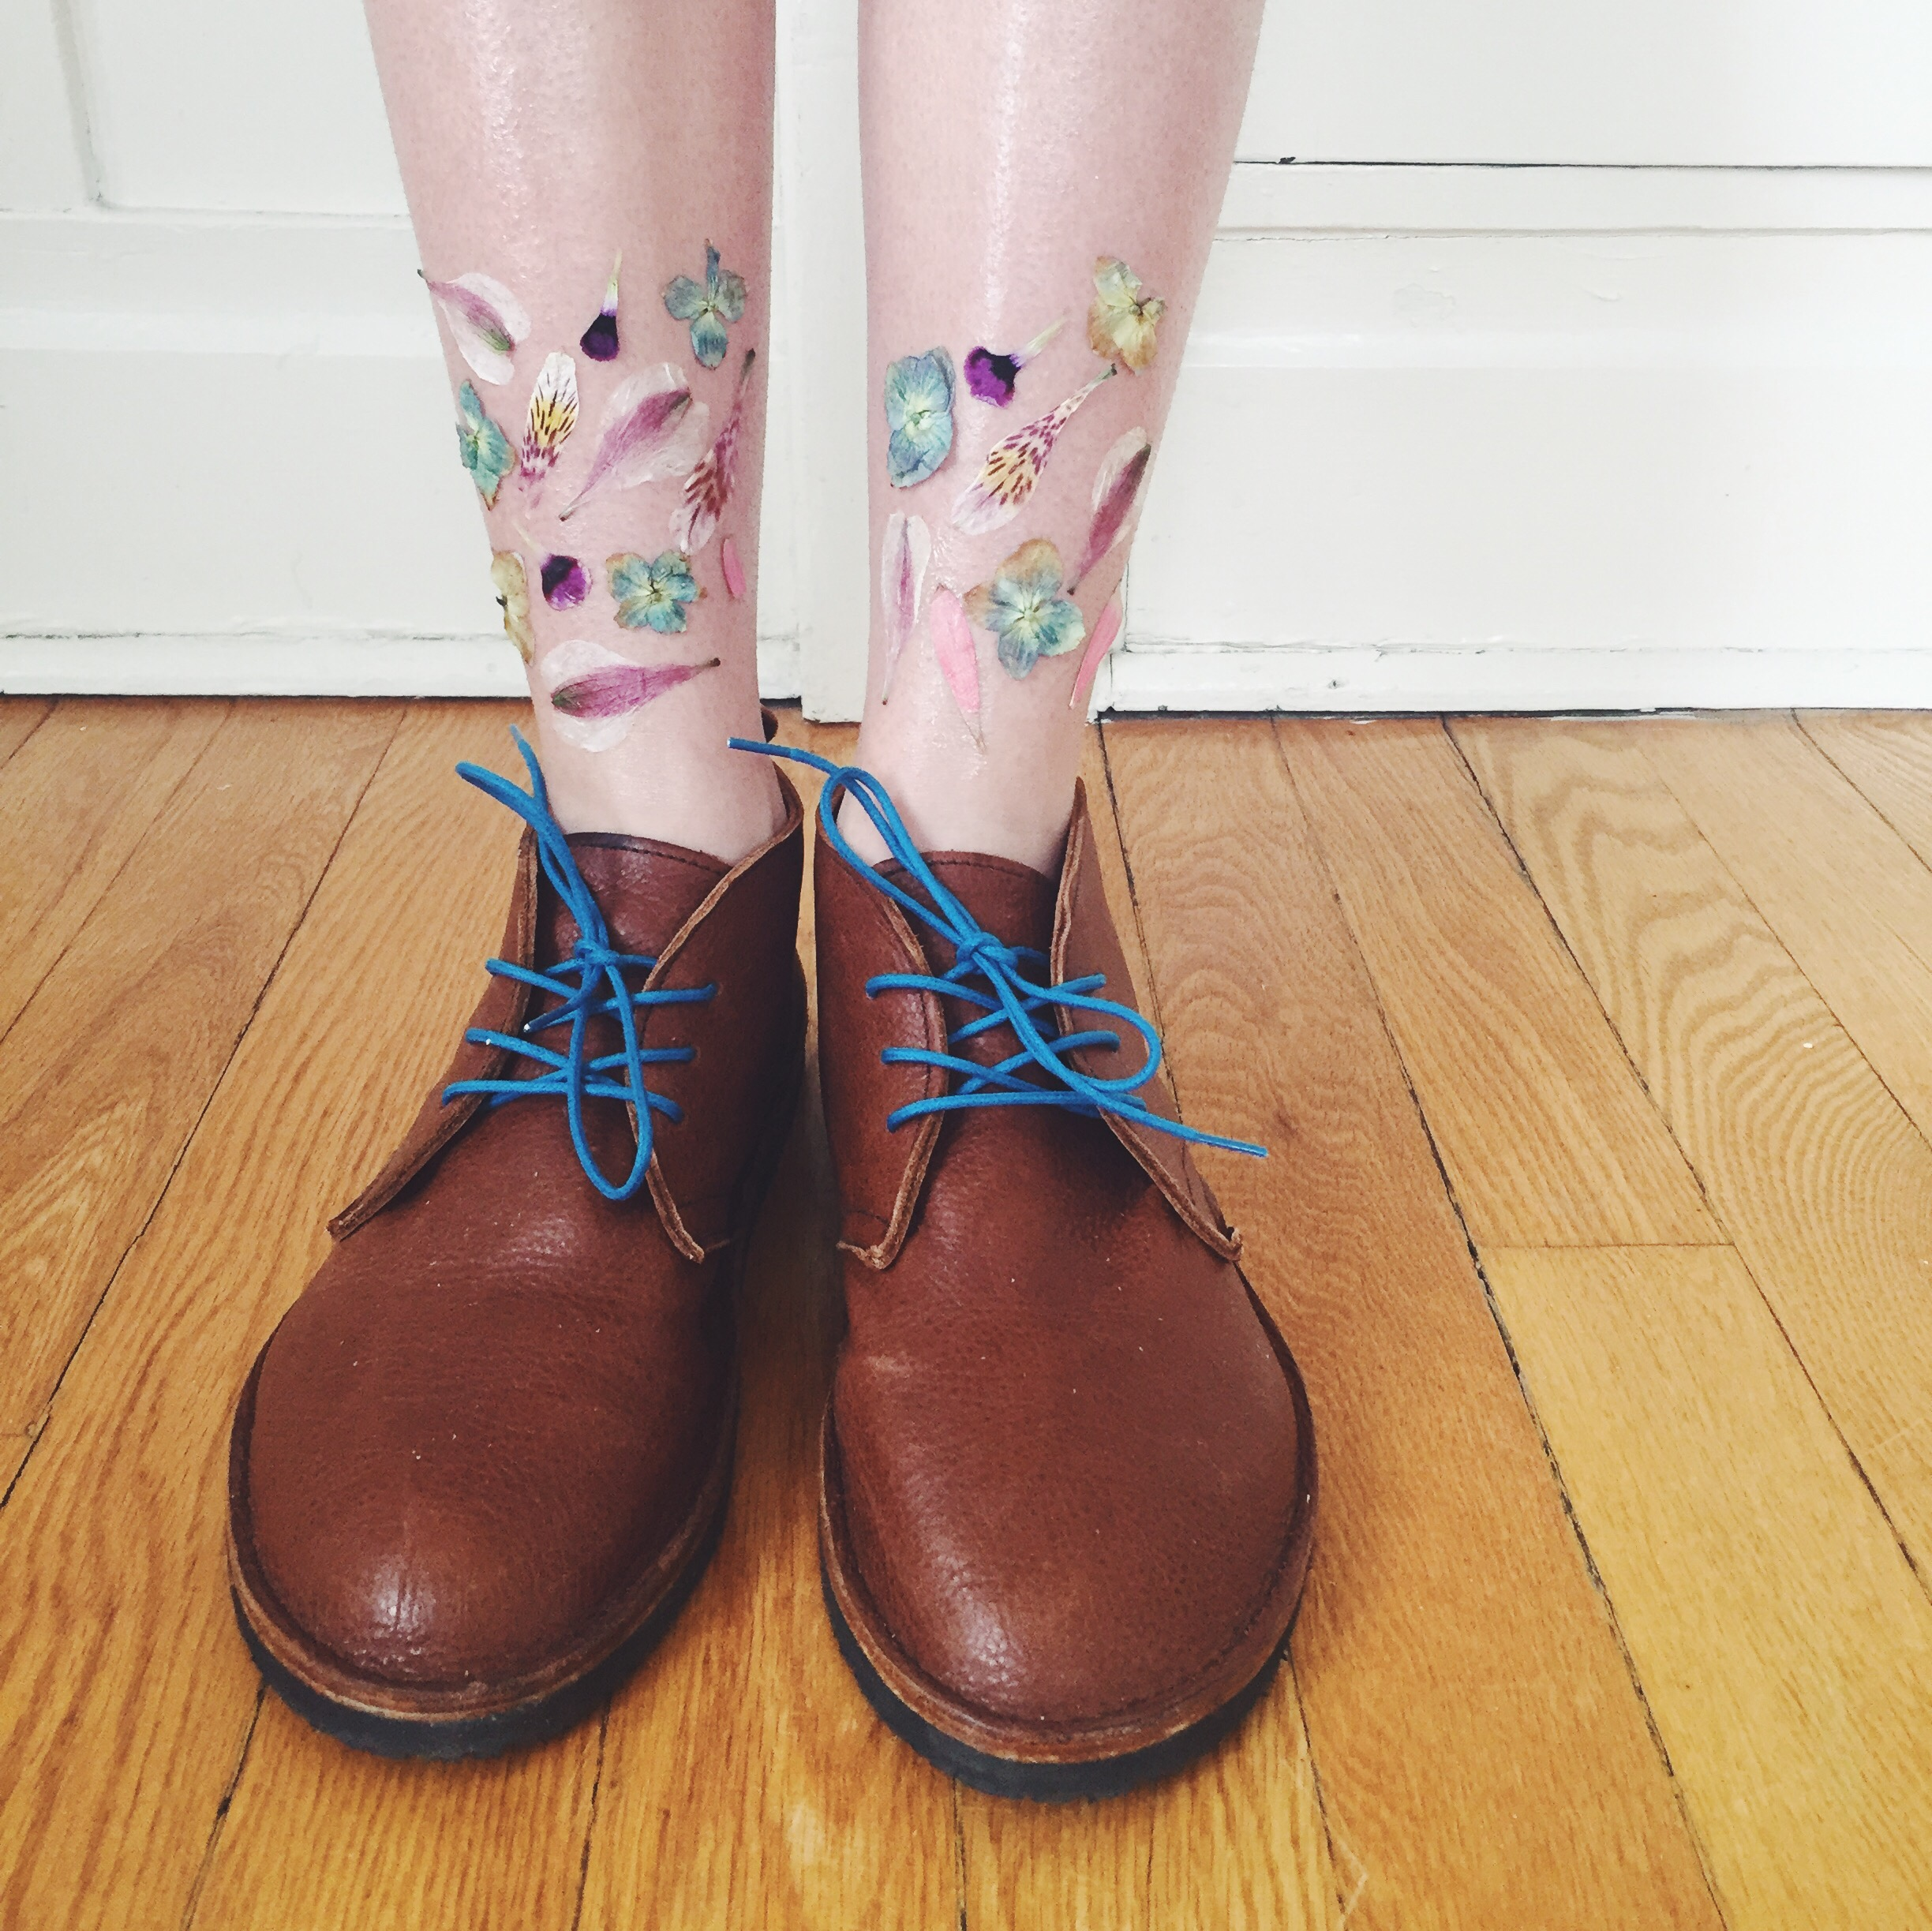 Real Flower Temporary Tattoos Soft Star Shoes Hippie in Disguise